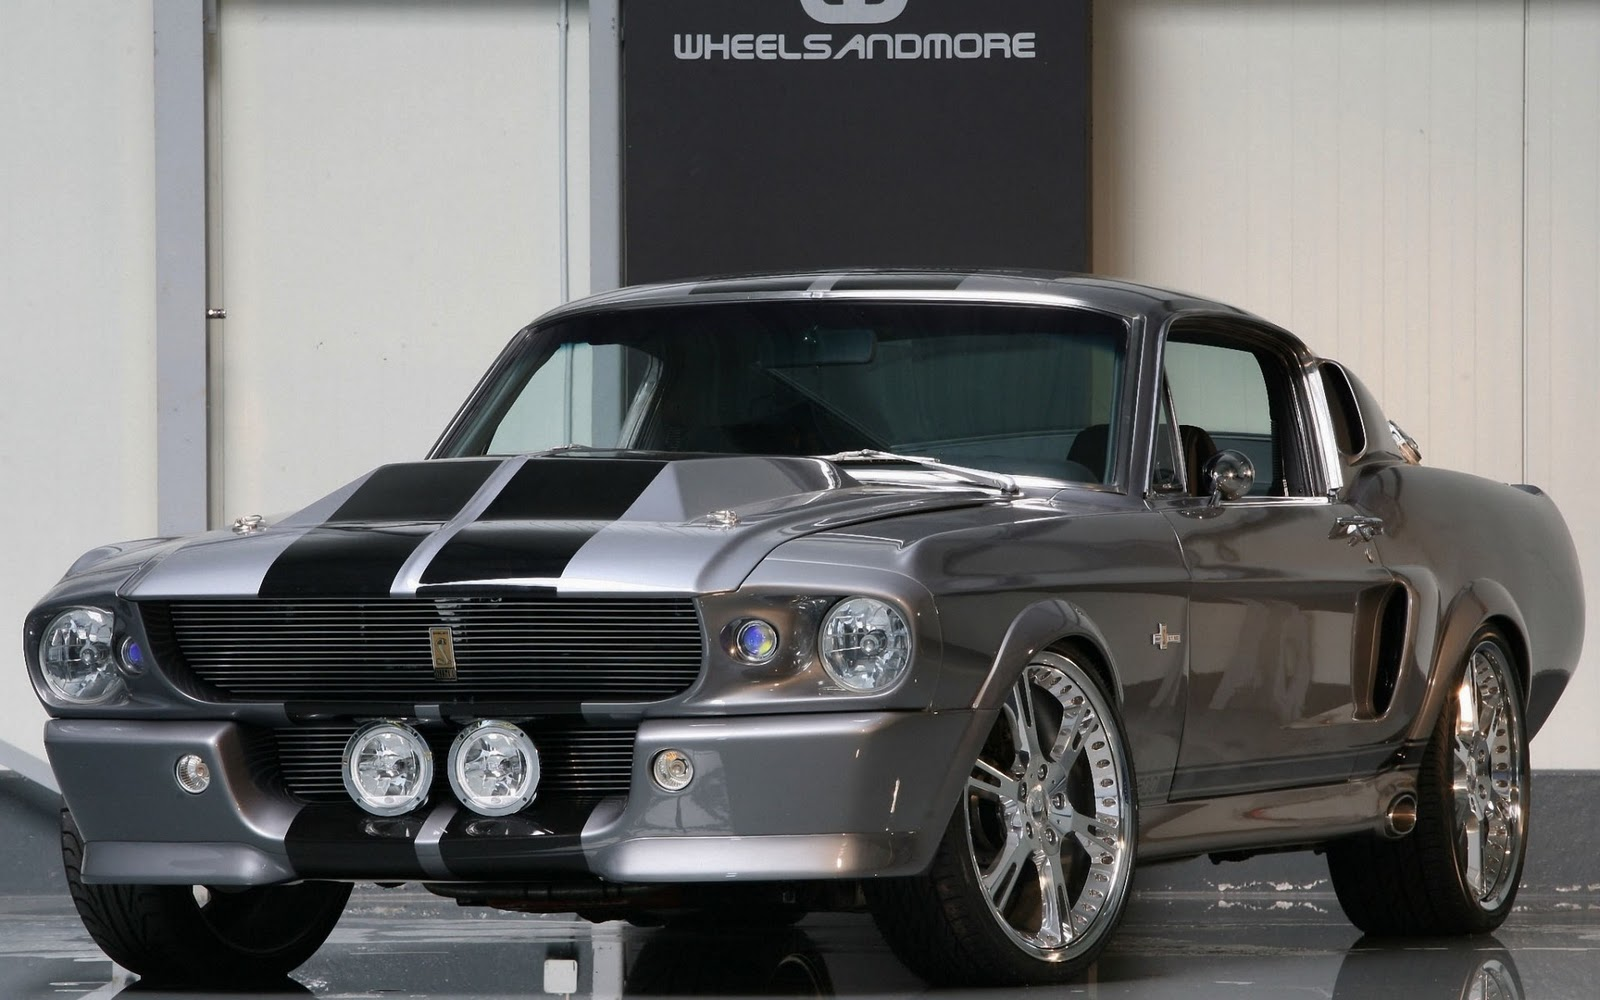 Old Muscle Cars Hd Wallpapers Wallpapersafari Ford Mustang Coupe 302 V8 Oldtimer 1967 Horsepower Pinterest Cool Car Wallpaper 1600x1000